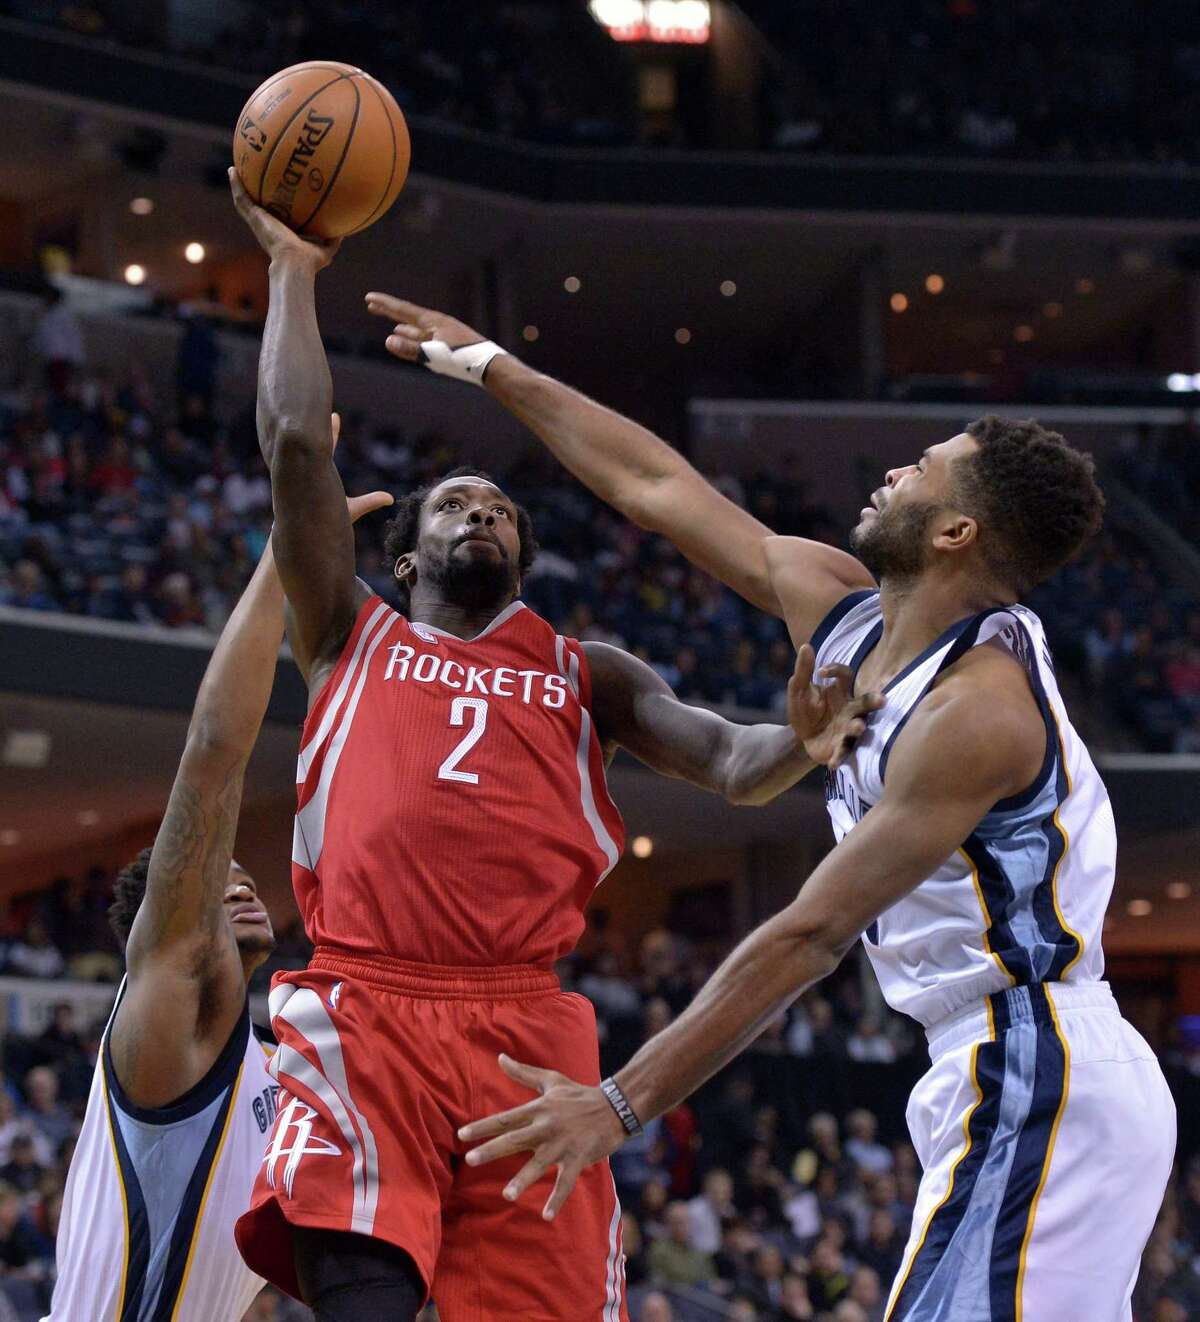 Rockets guard Pat Beverley, left, drives between two Grizzlies to the basket. He finished with 13 points.